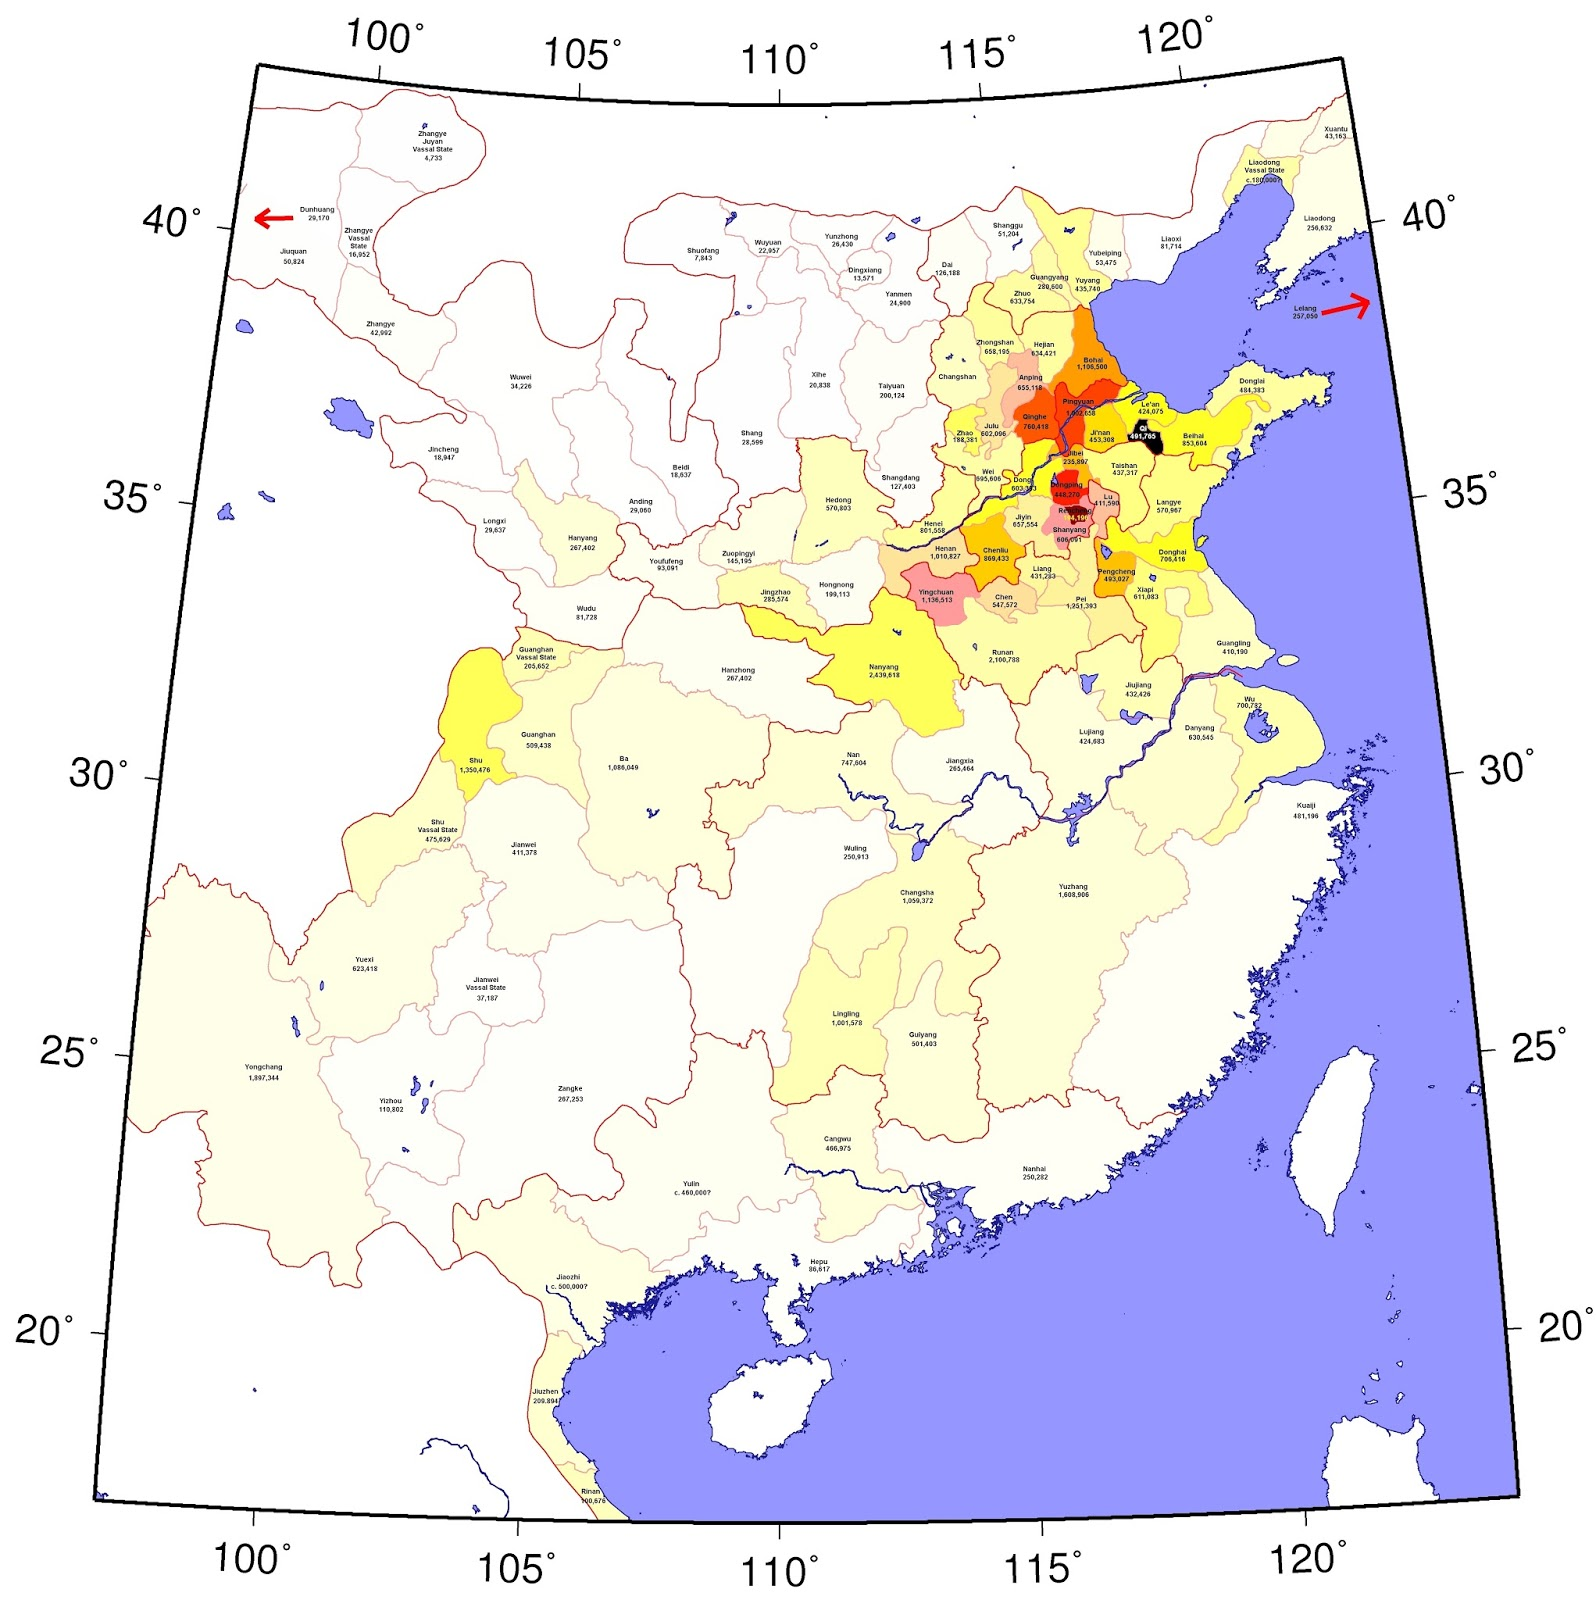 Population map of ancient china per an empire wide census made in 2 population map of ancient china per an empire wide census made in 2 ad gumiabroncs Images